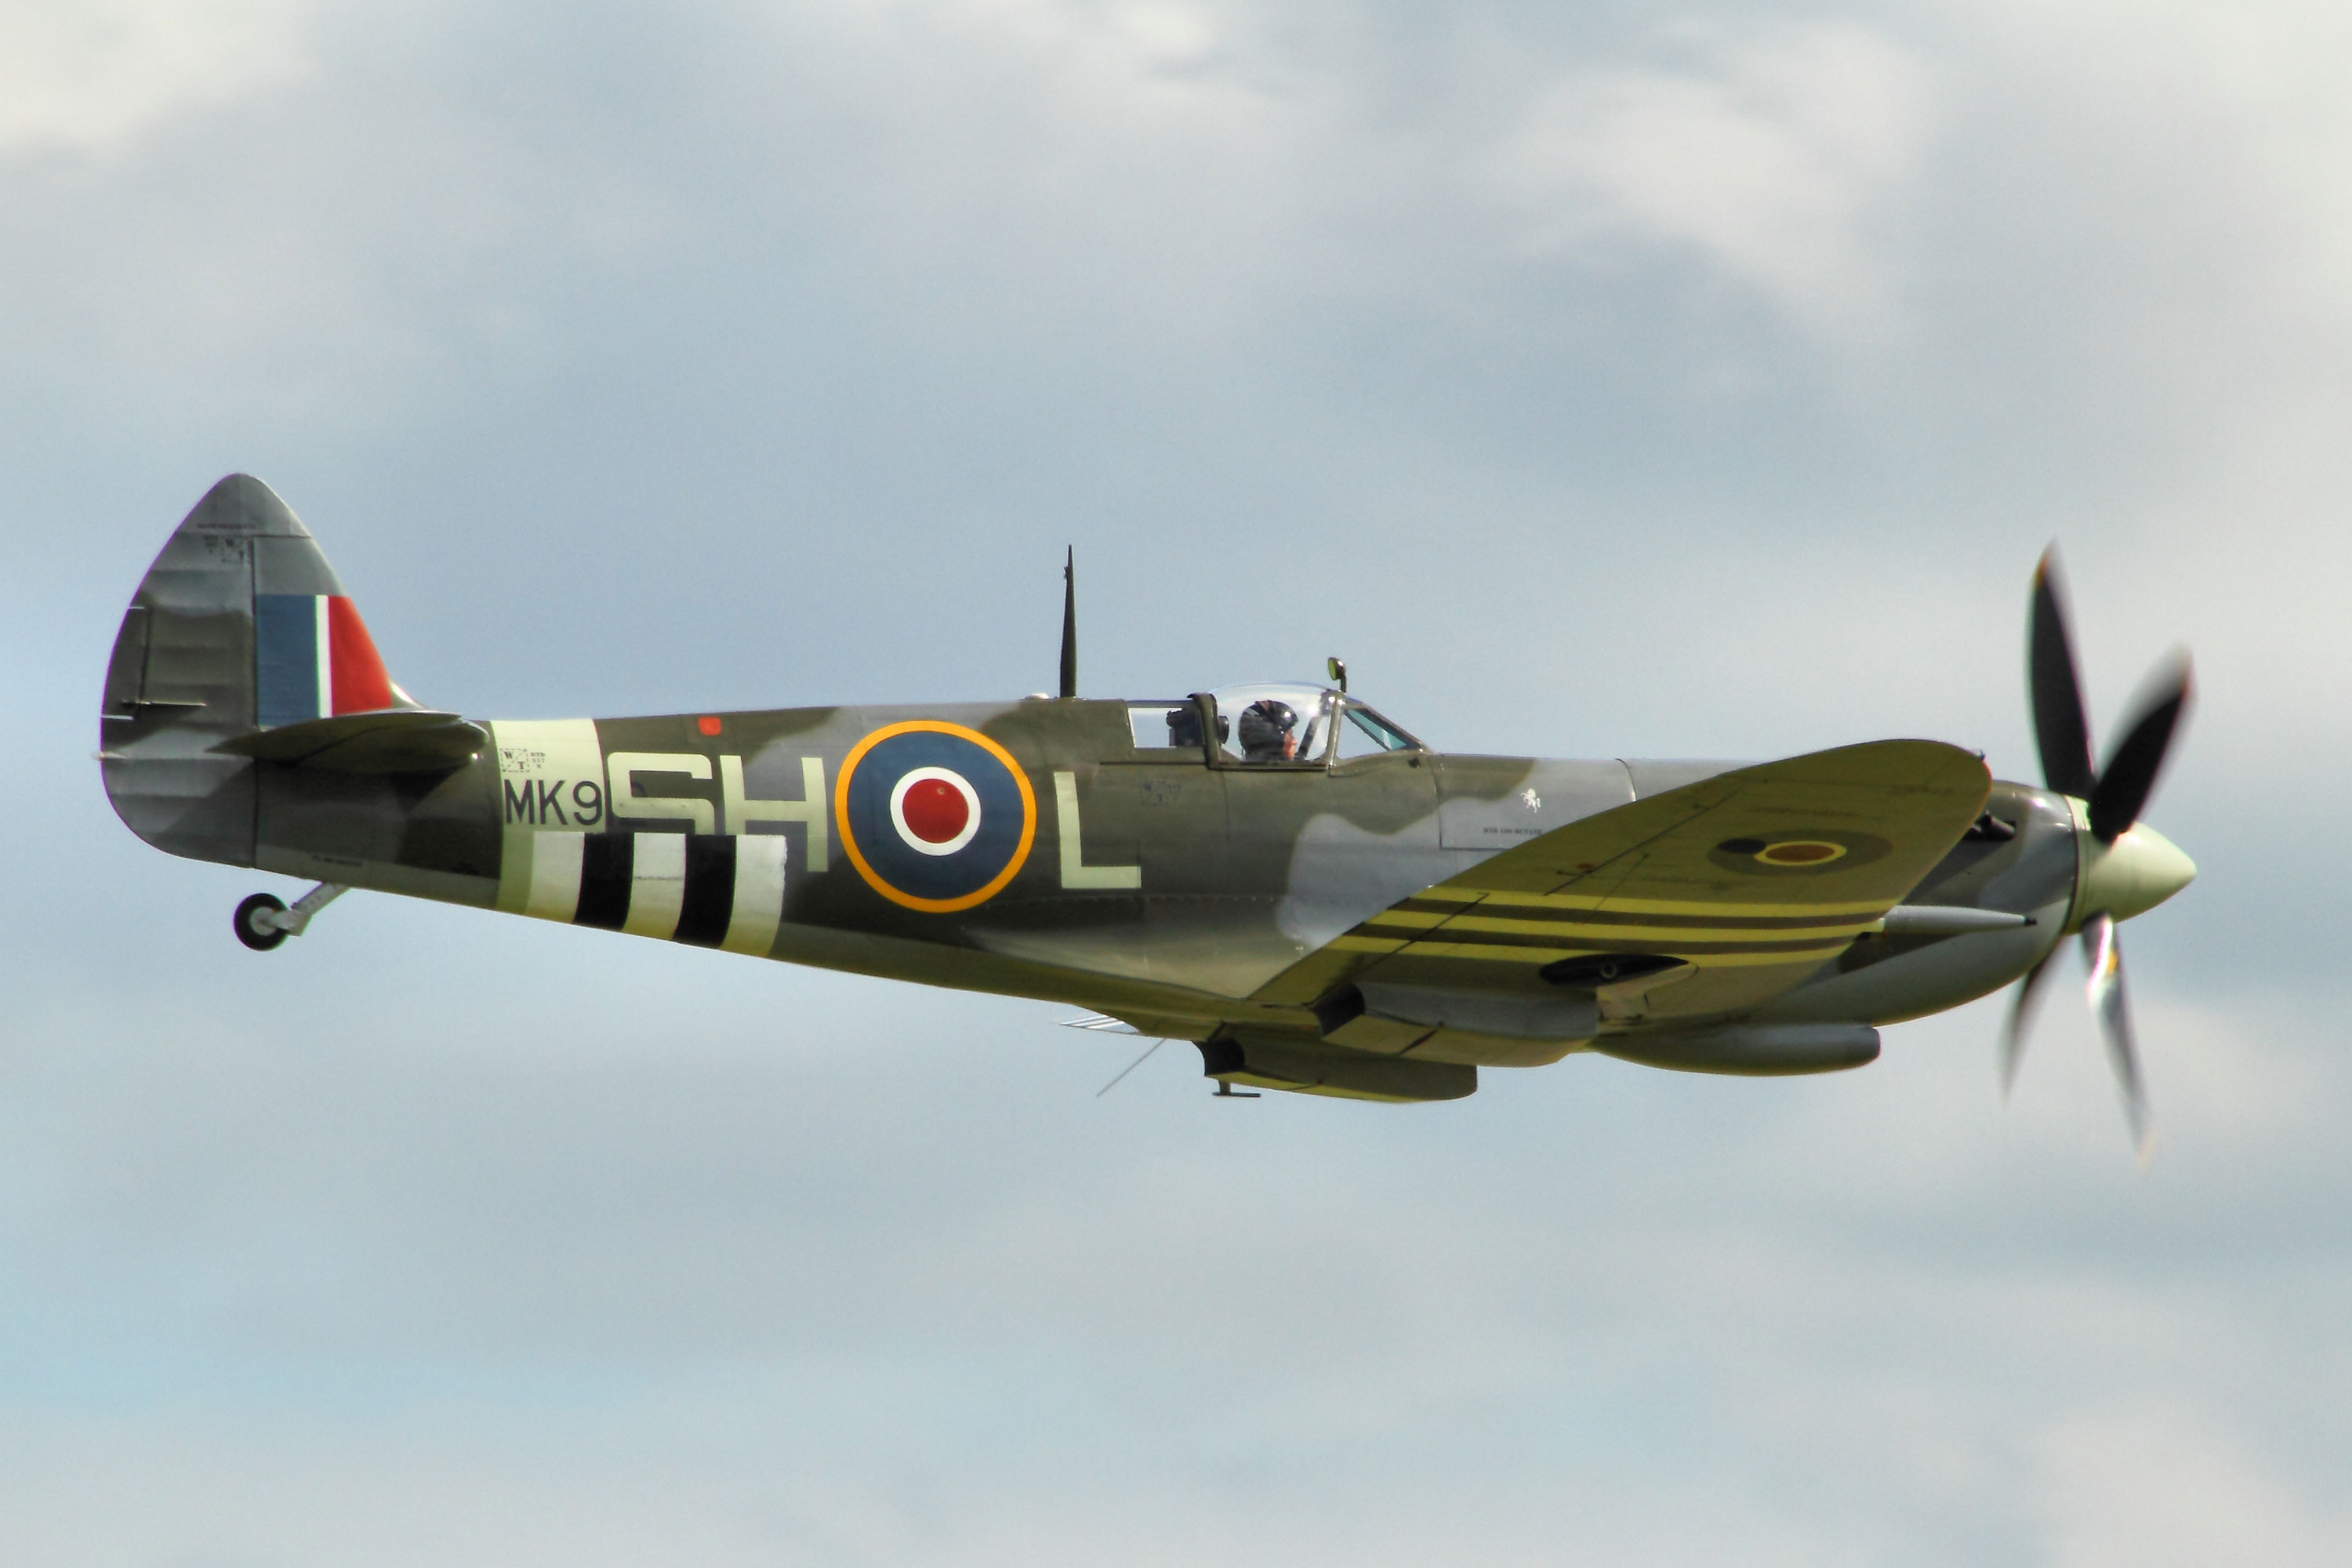 Exclusive Two Seater Spitfire Flights To Take Off In Early